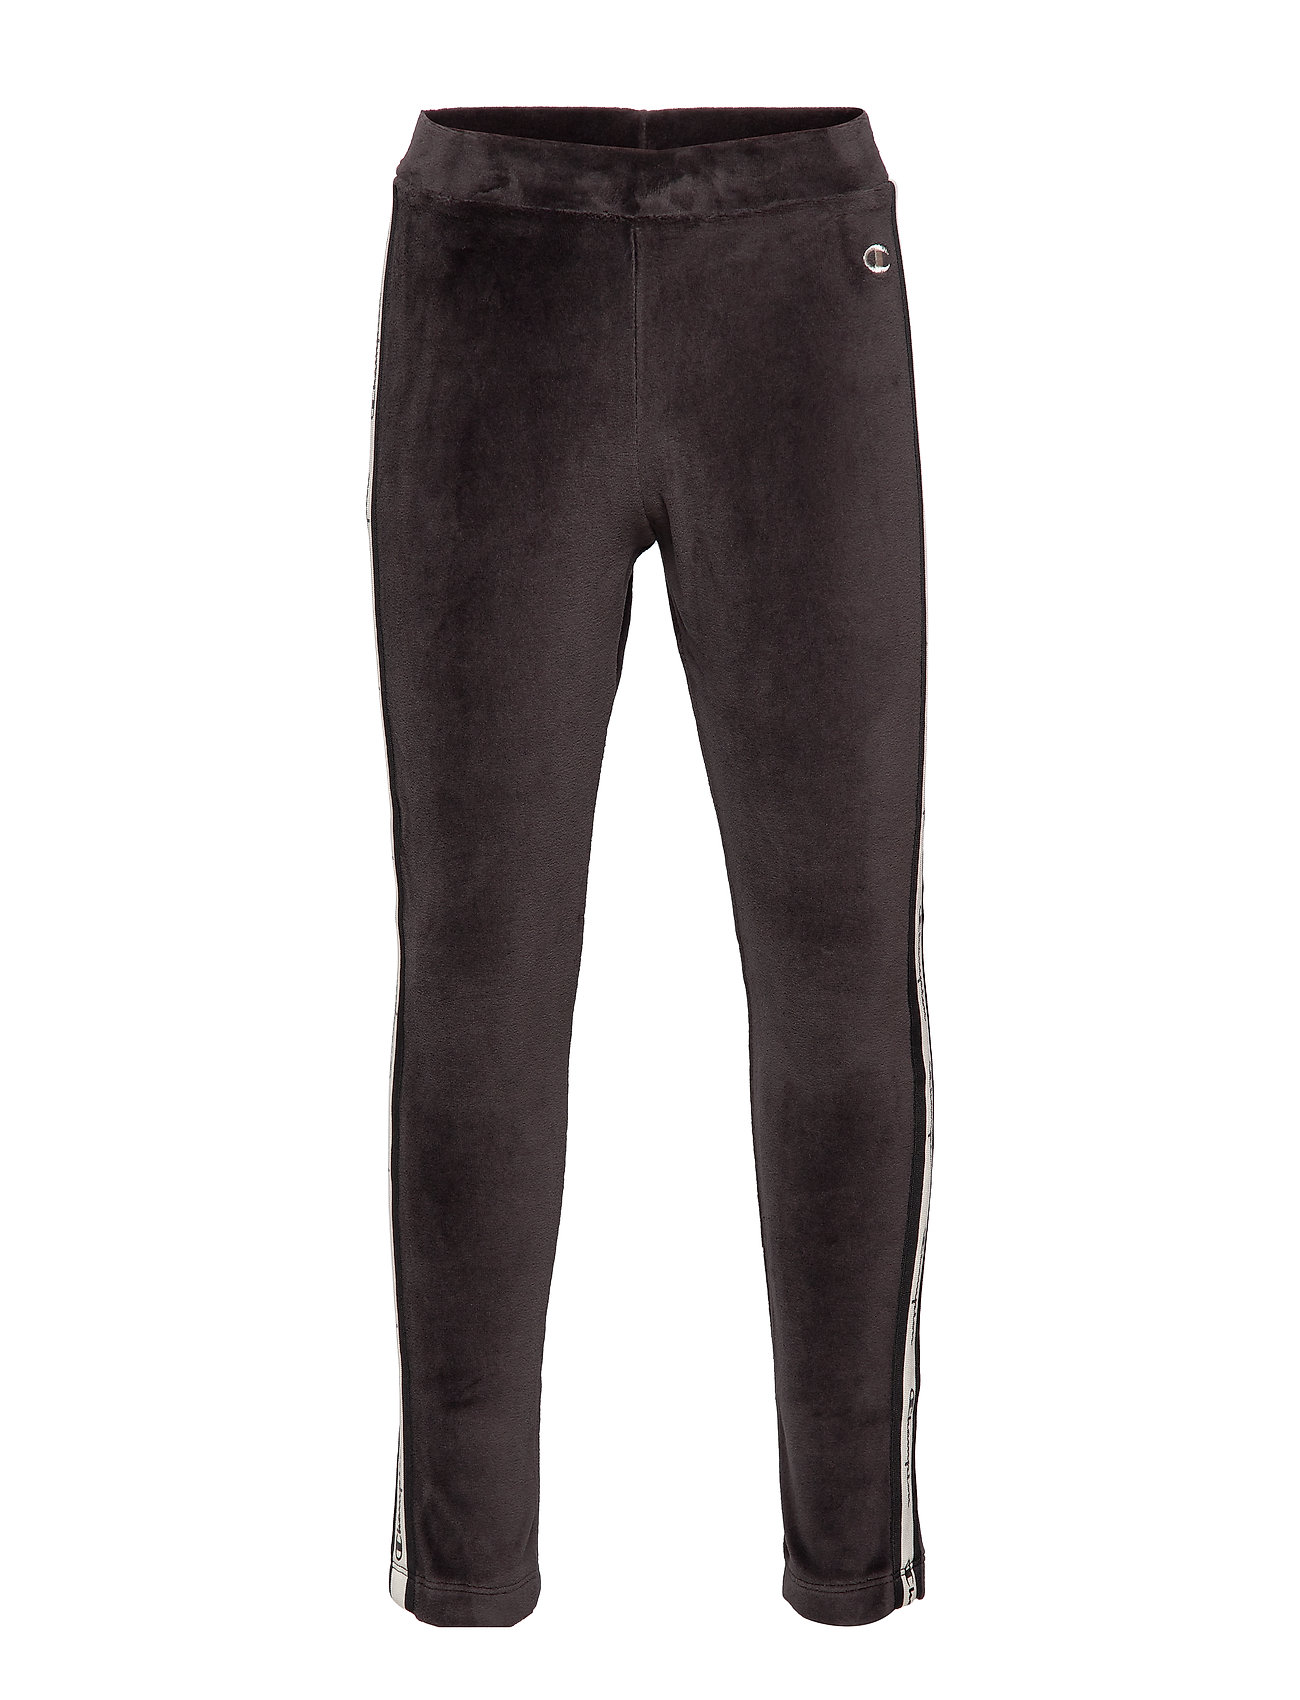 Champion Leggings - BLACK BEAUTY